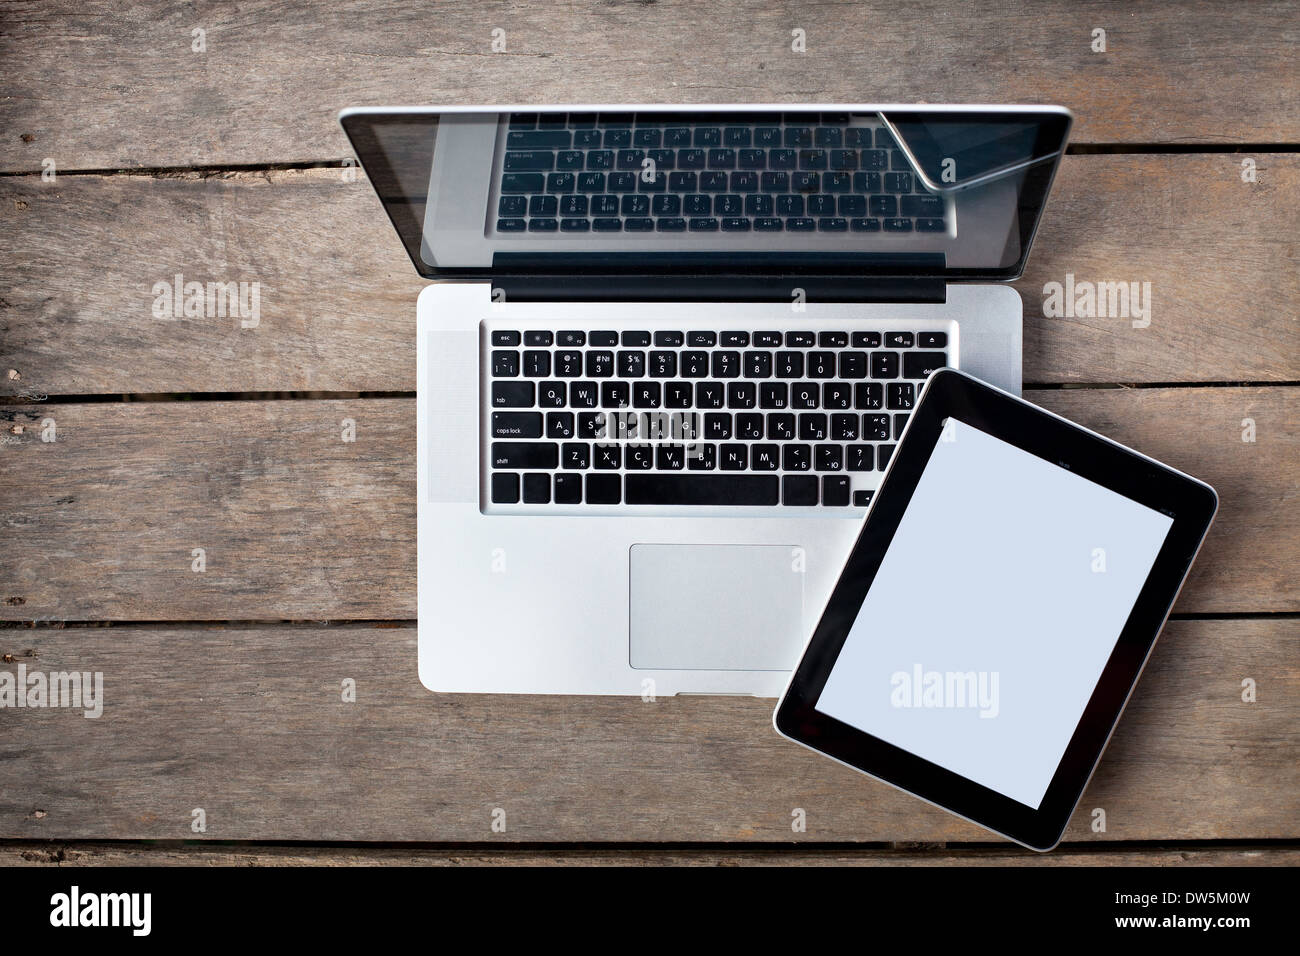 laptop and tablet on old wooden desk - Stock Image